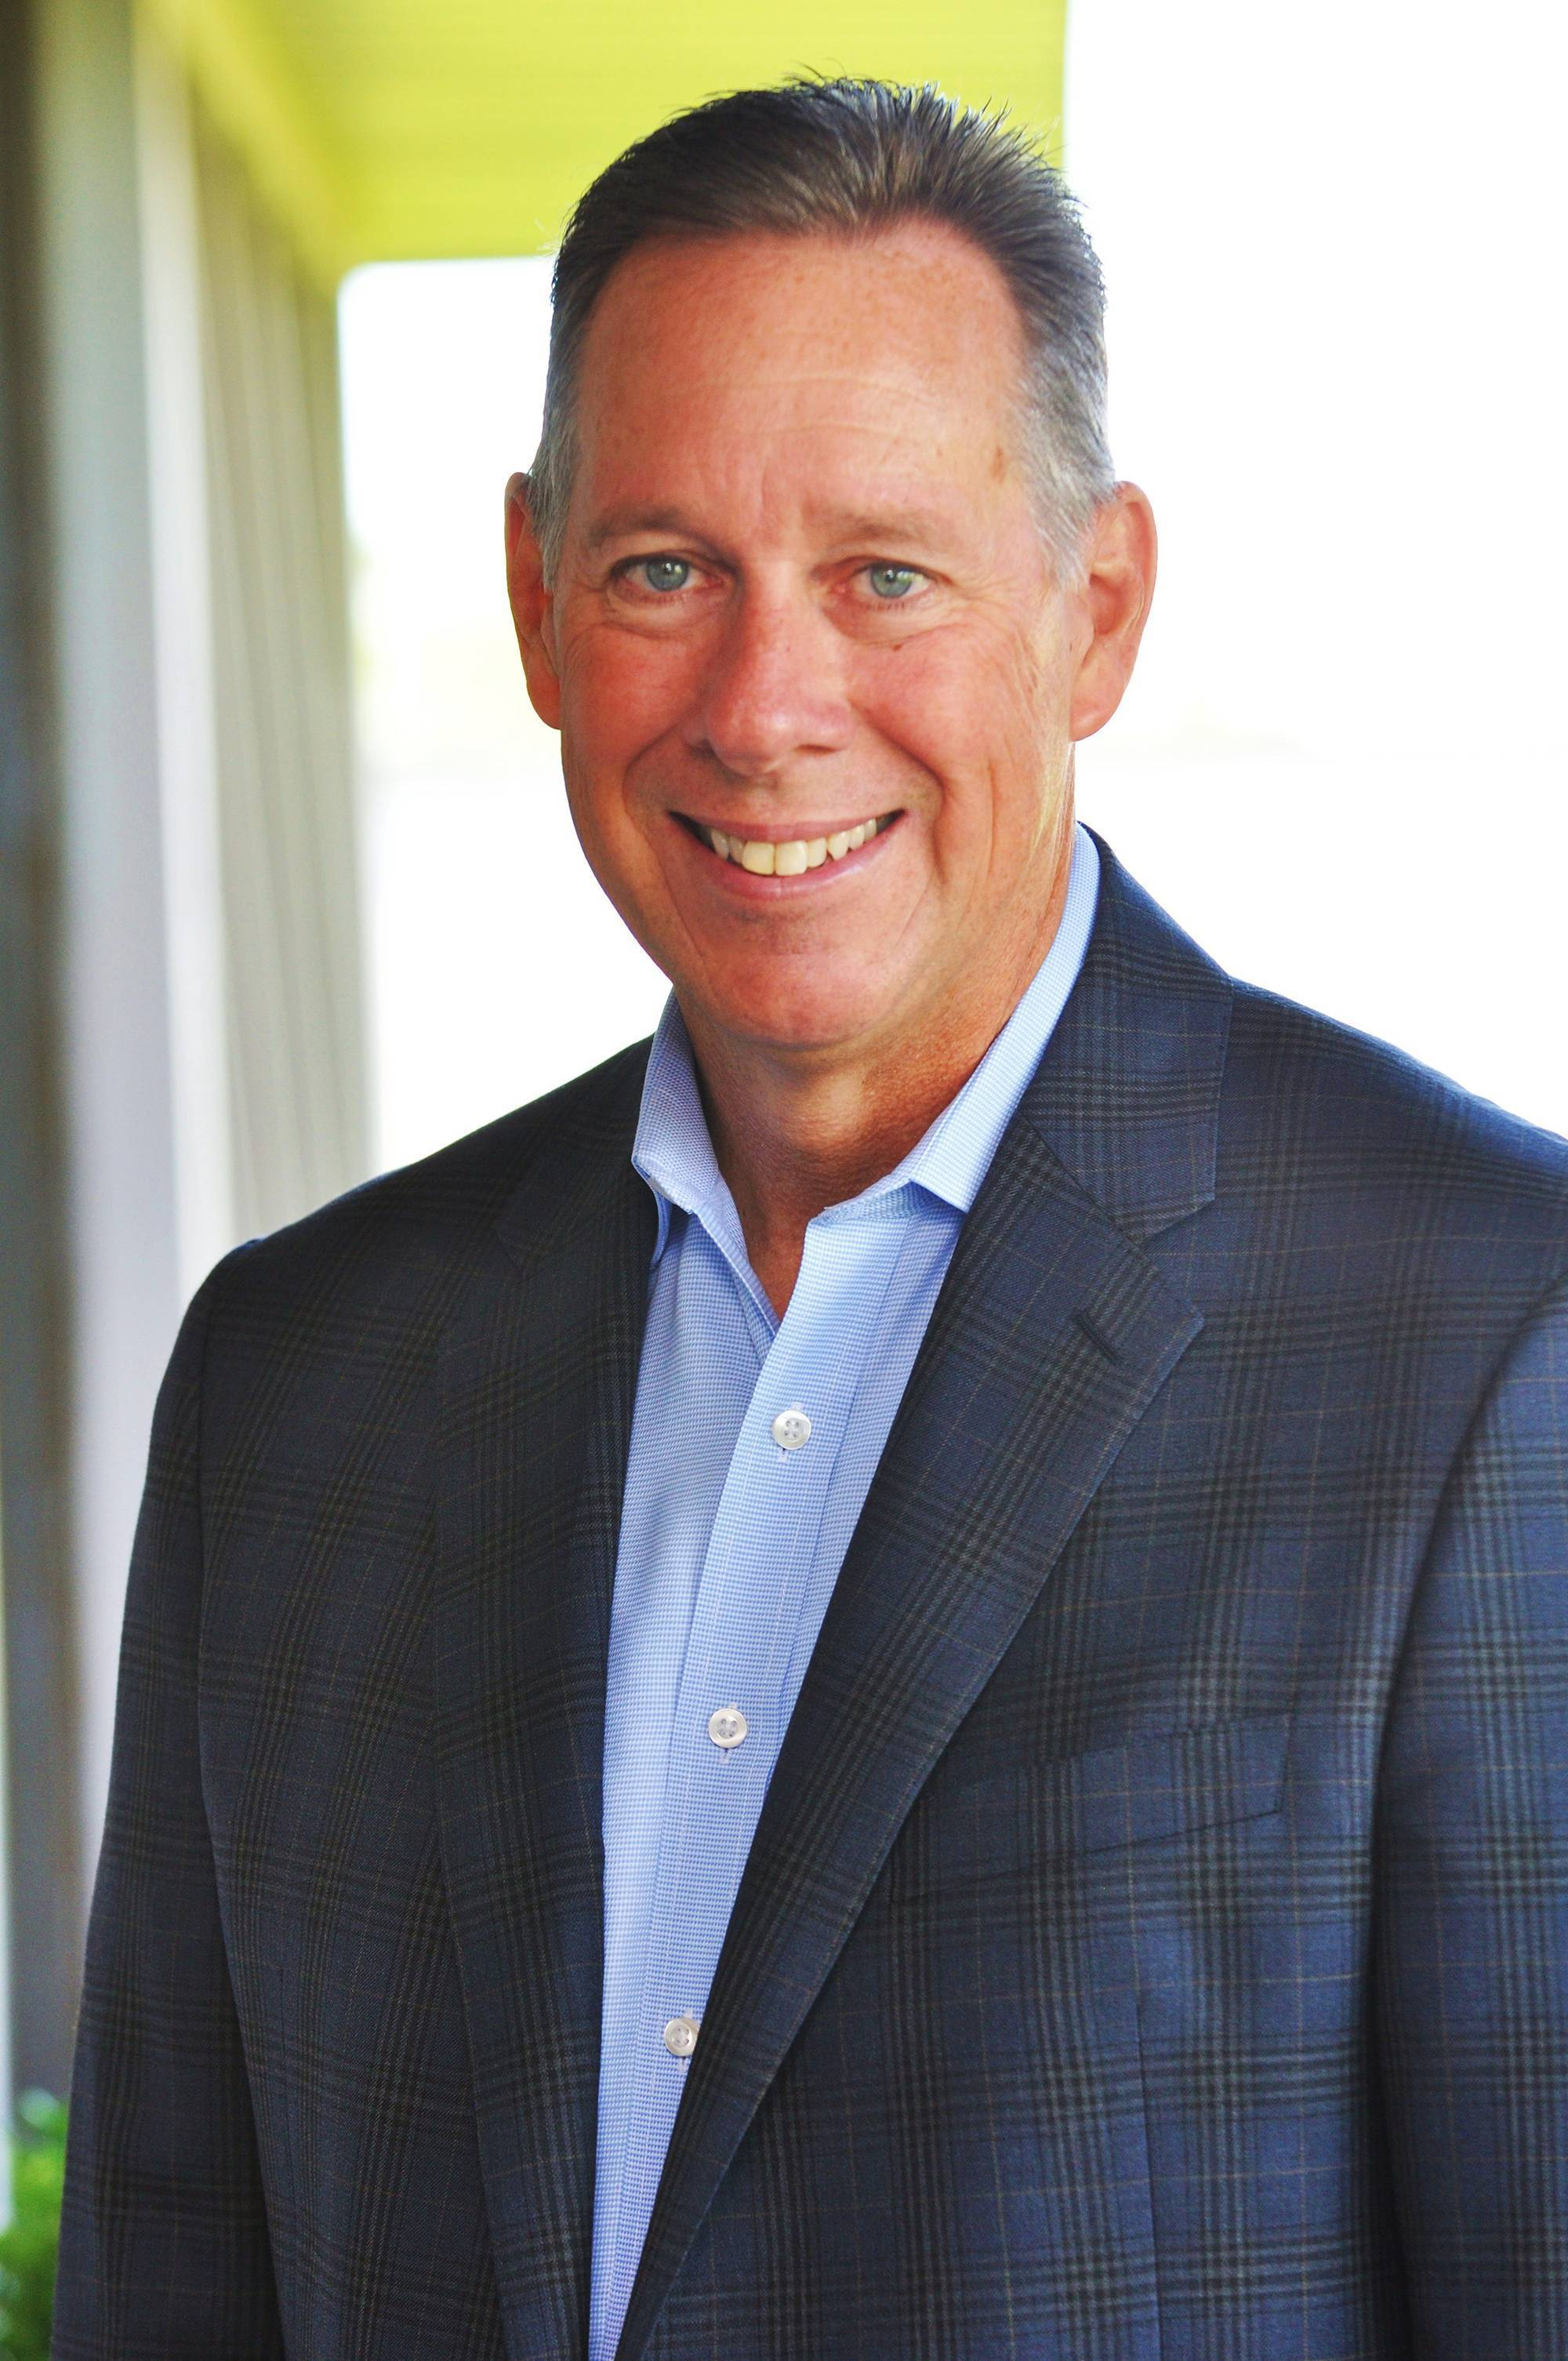 Picture of Bill Marks, Director of Sales